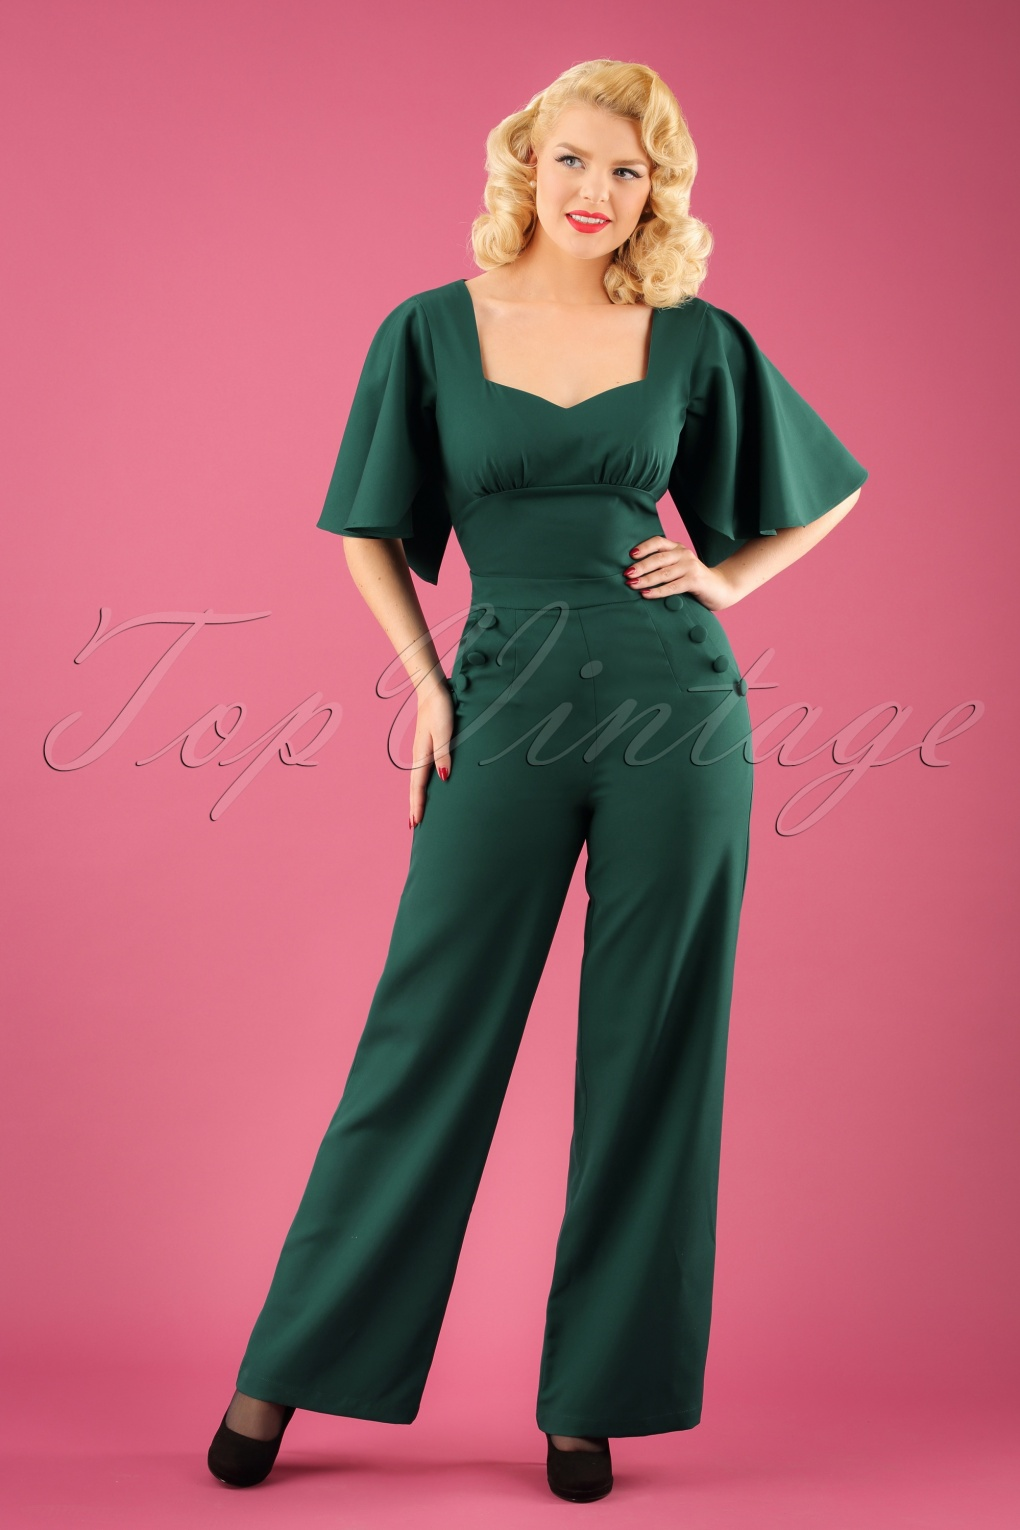 Vintage Overalls 1910s -1950s Pictures and History 40s Esmeralda Cape Jumpsuit in Teal Green £64.89 AT vintagedancer.com